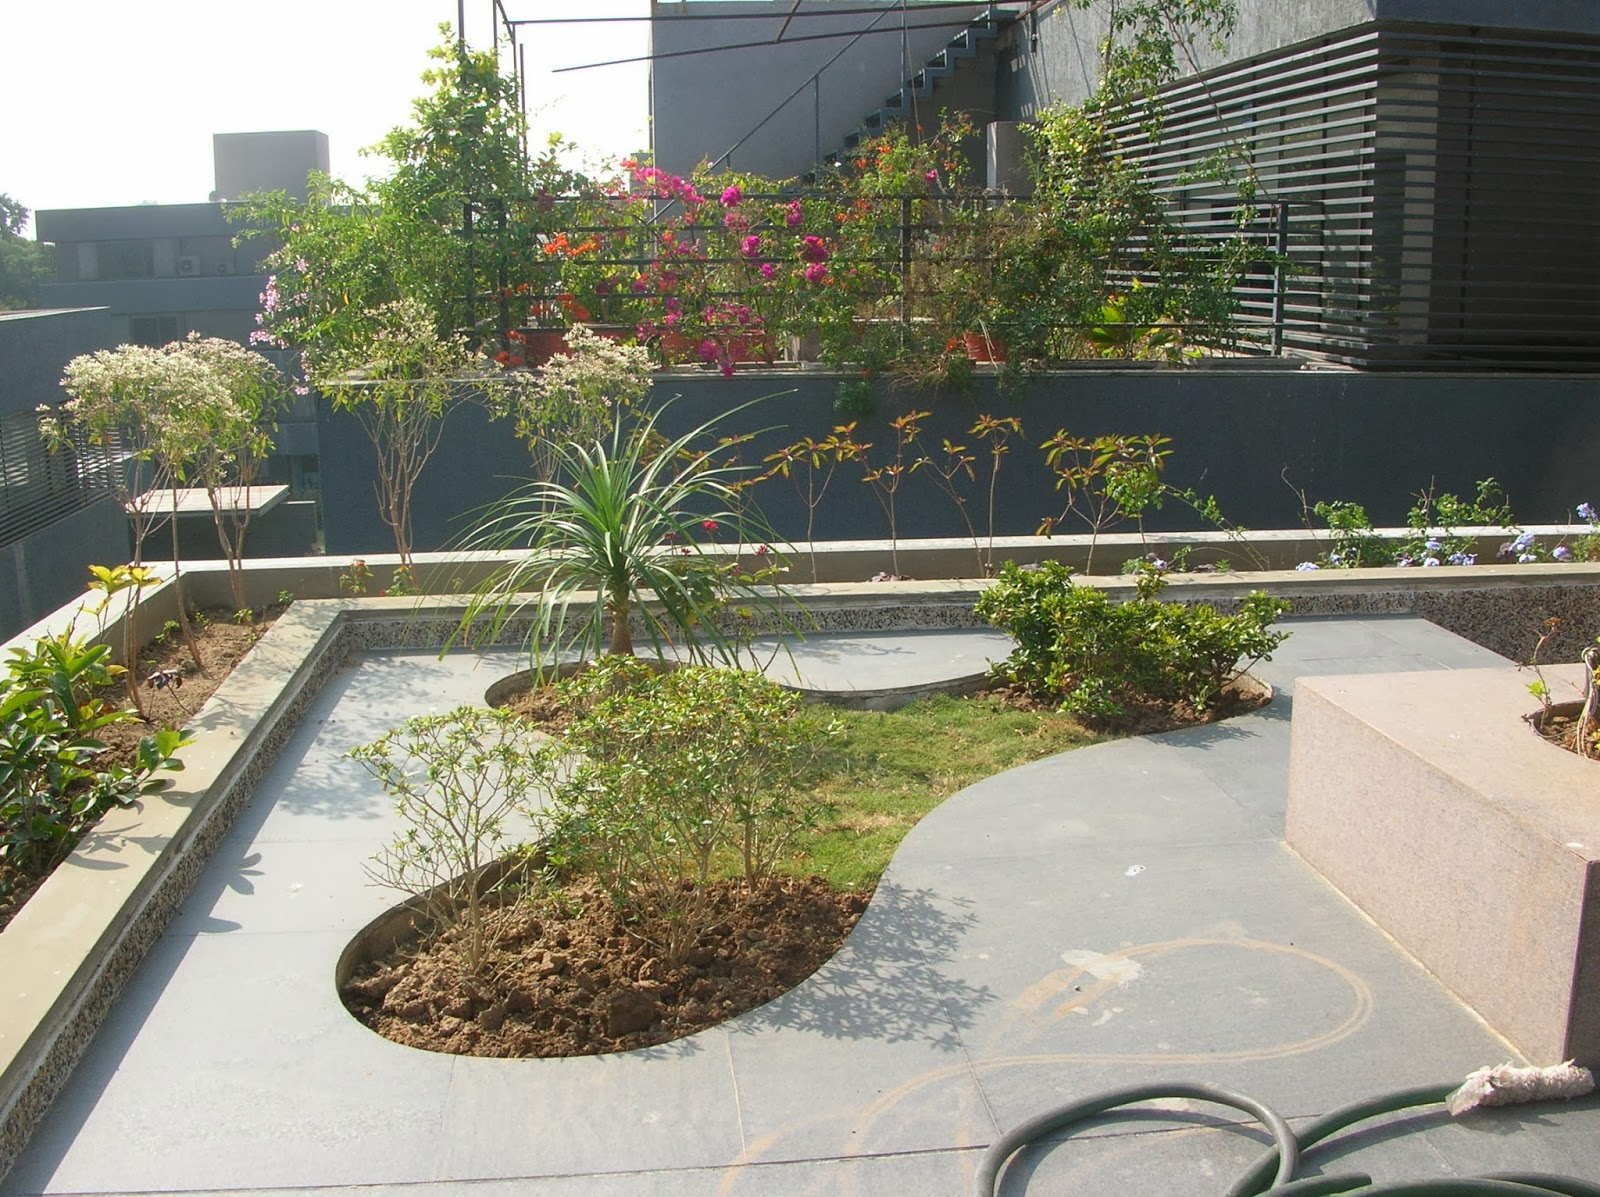 Bonsai trees and plants in ahmedabad for sale garden for Garden designs images pictures